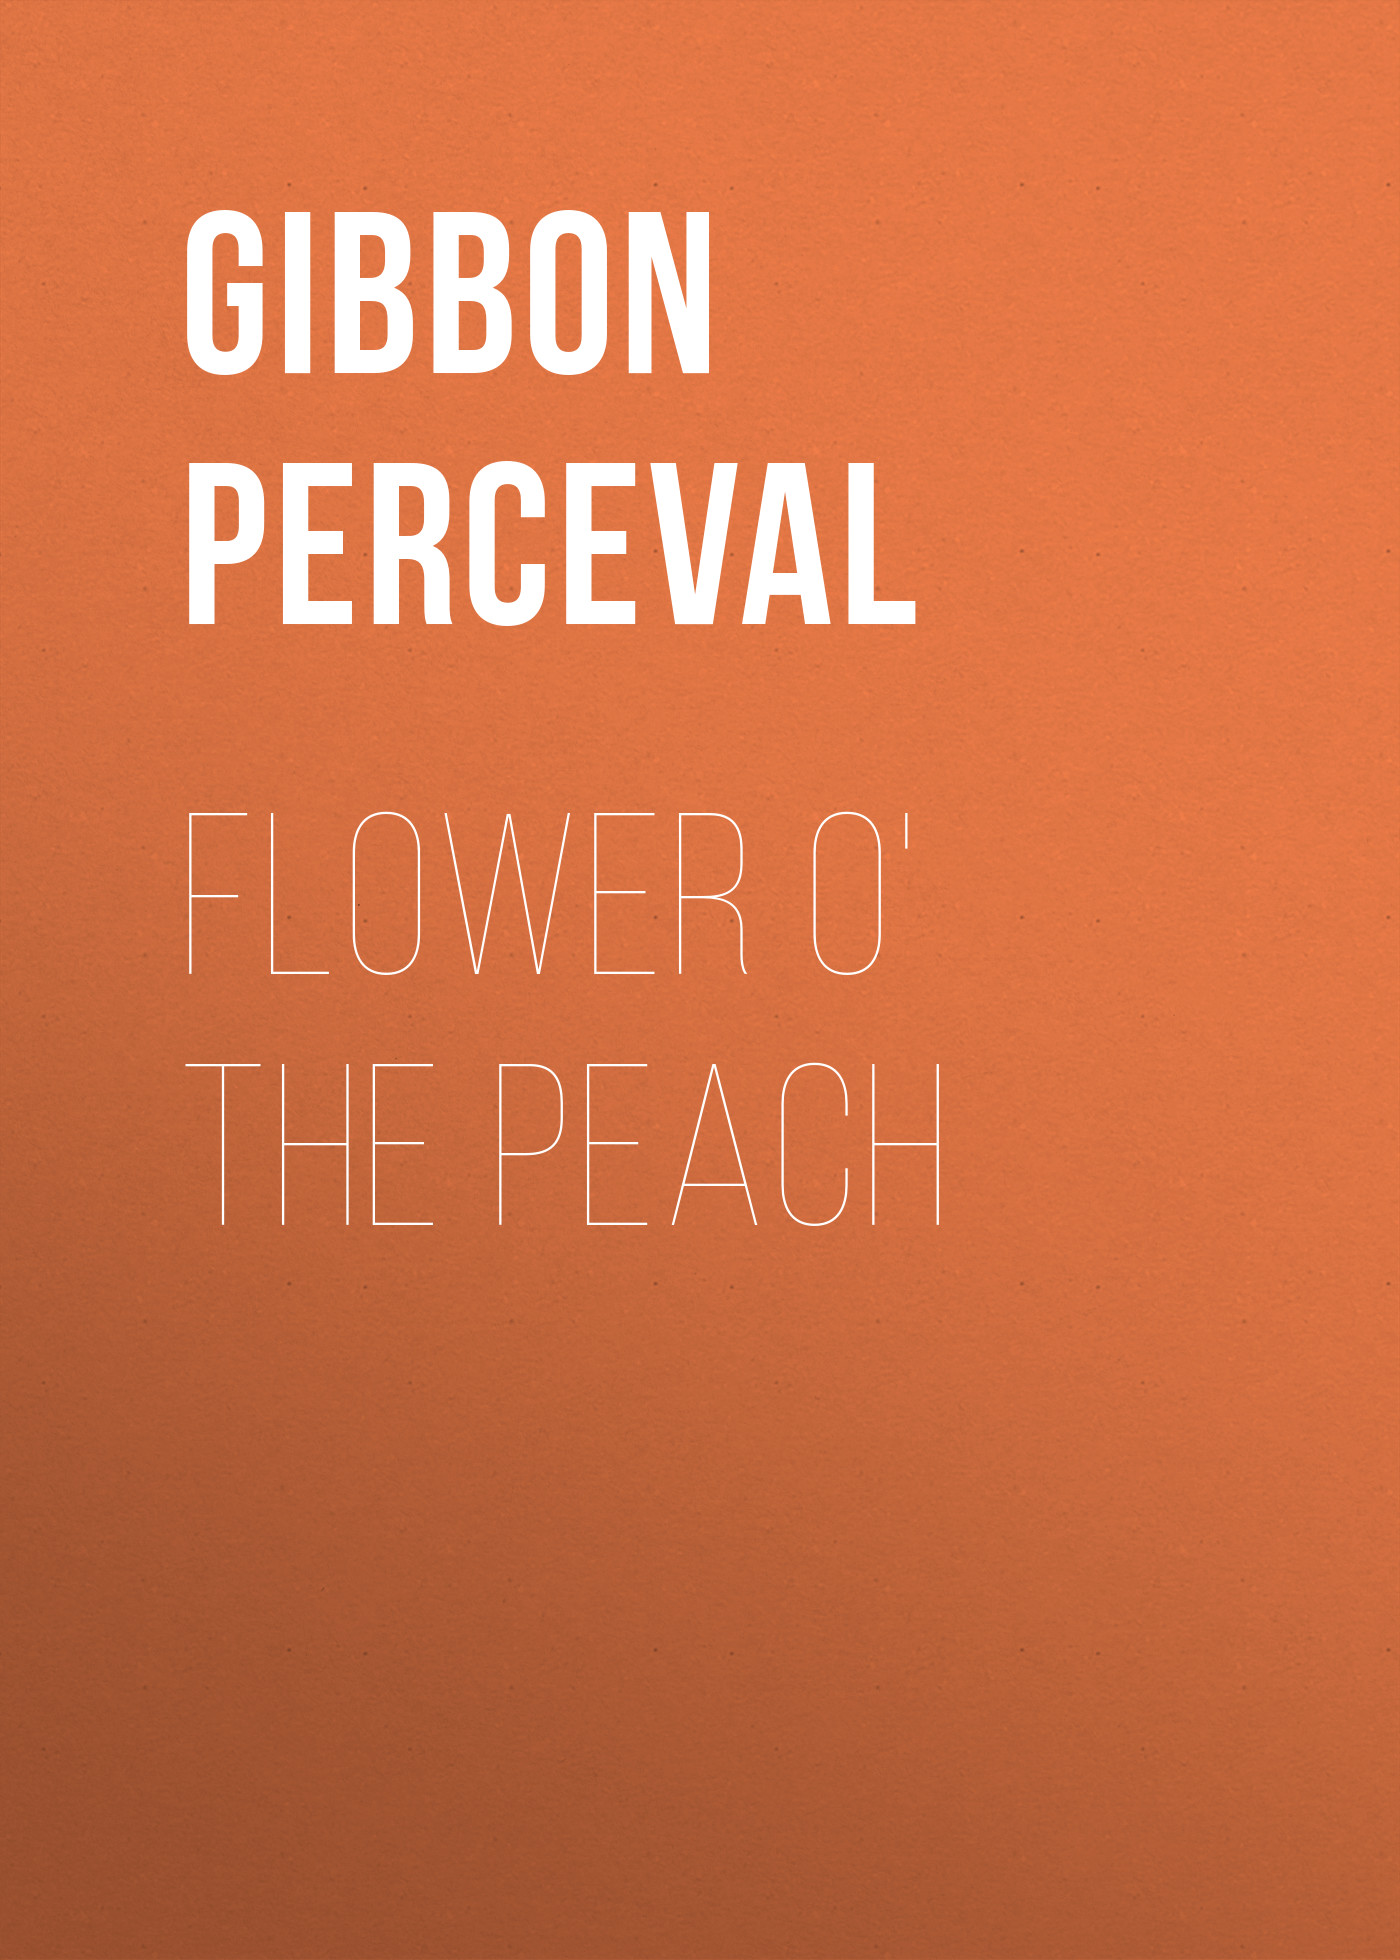 Gibbon Perceval Flower o' the Peach rumbaugh gibbon